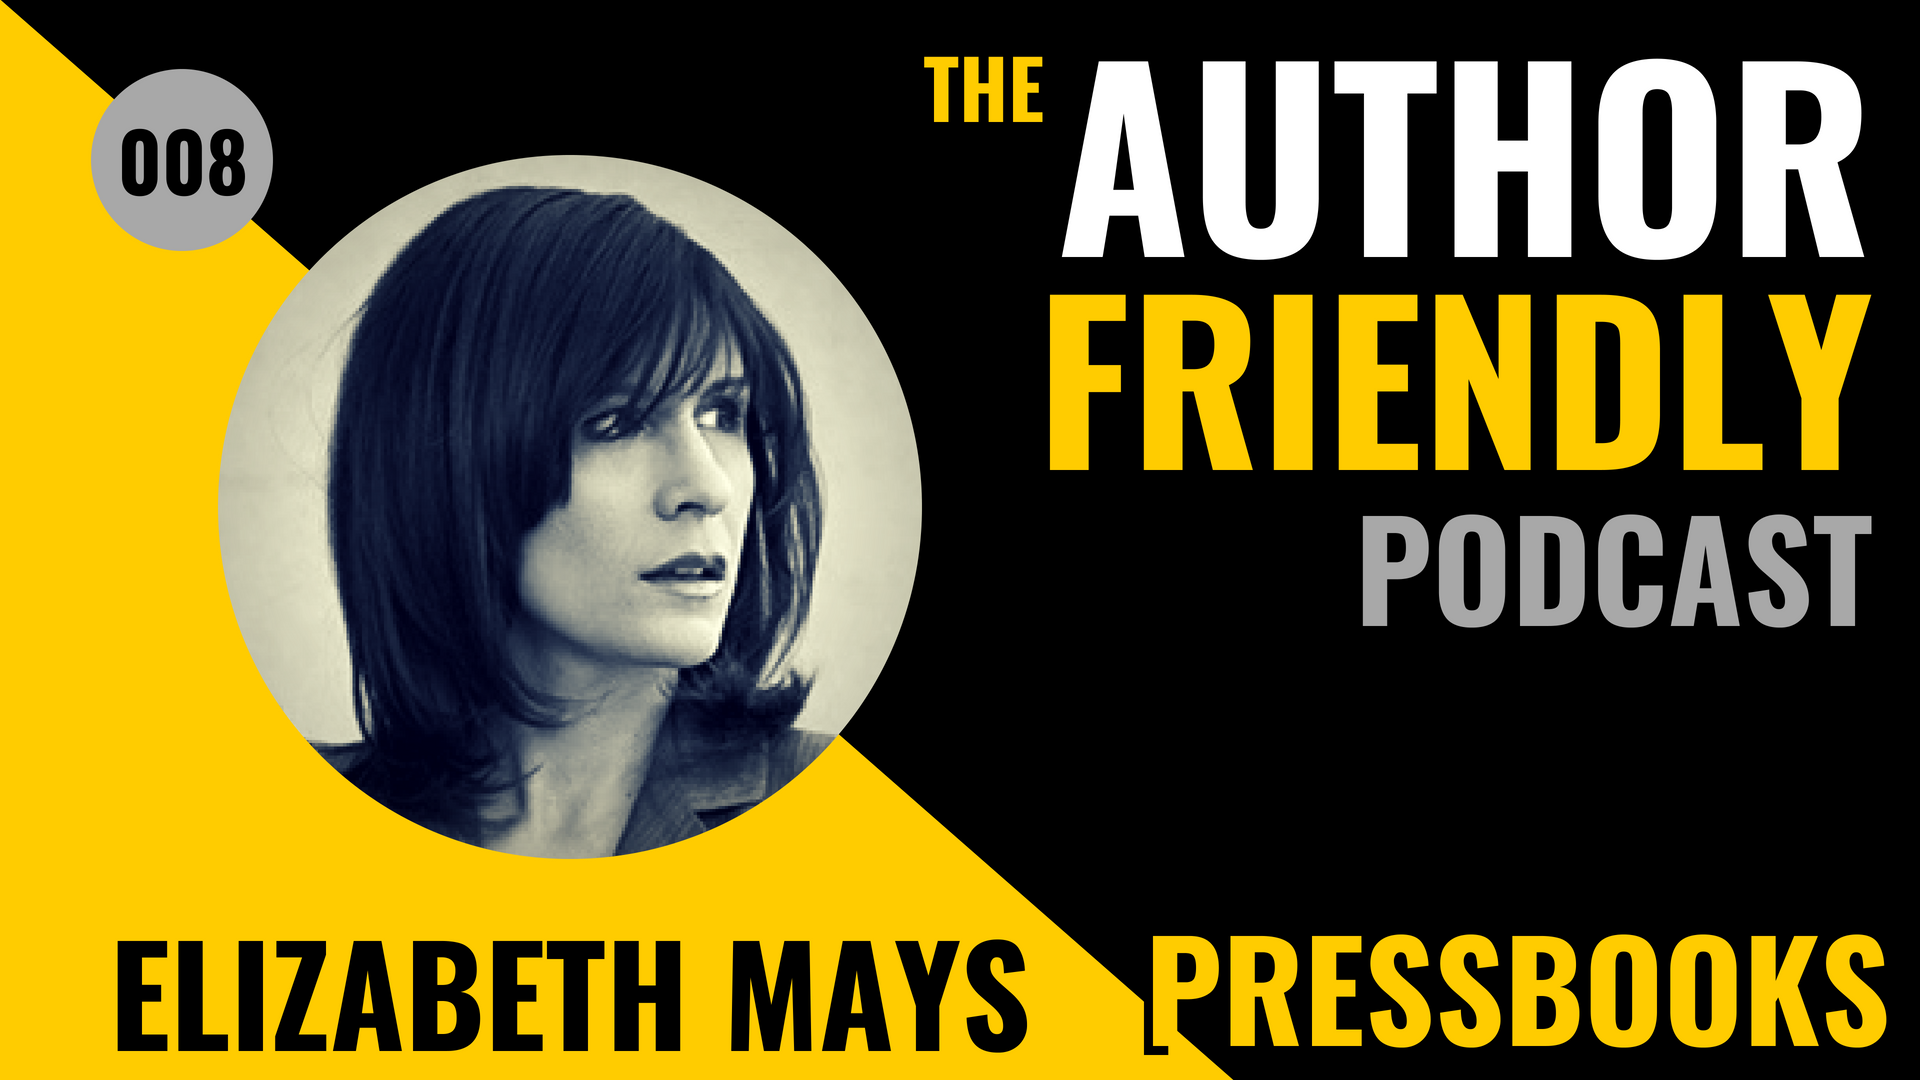 Pressbooks Author Friendly Podcast